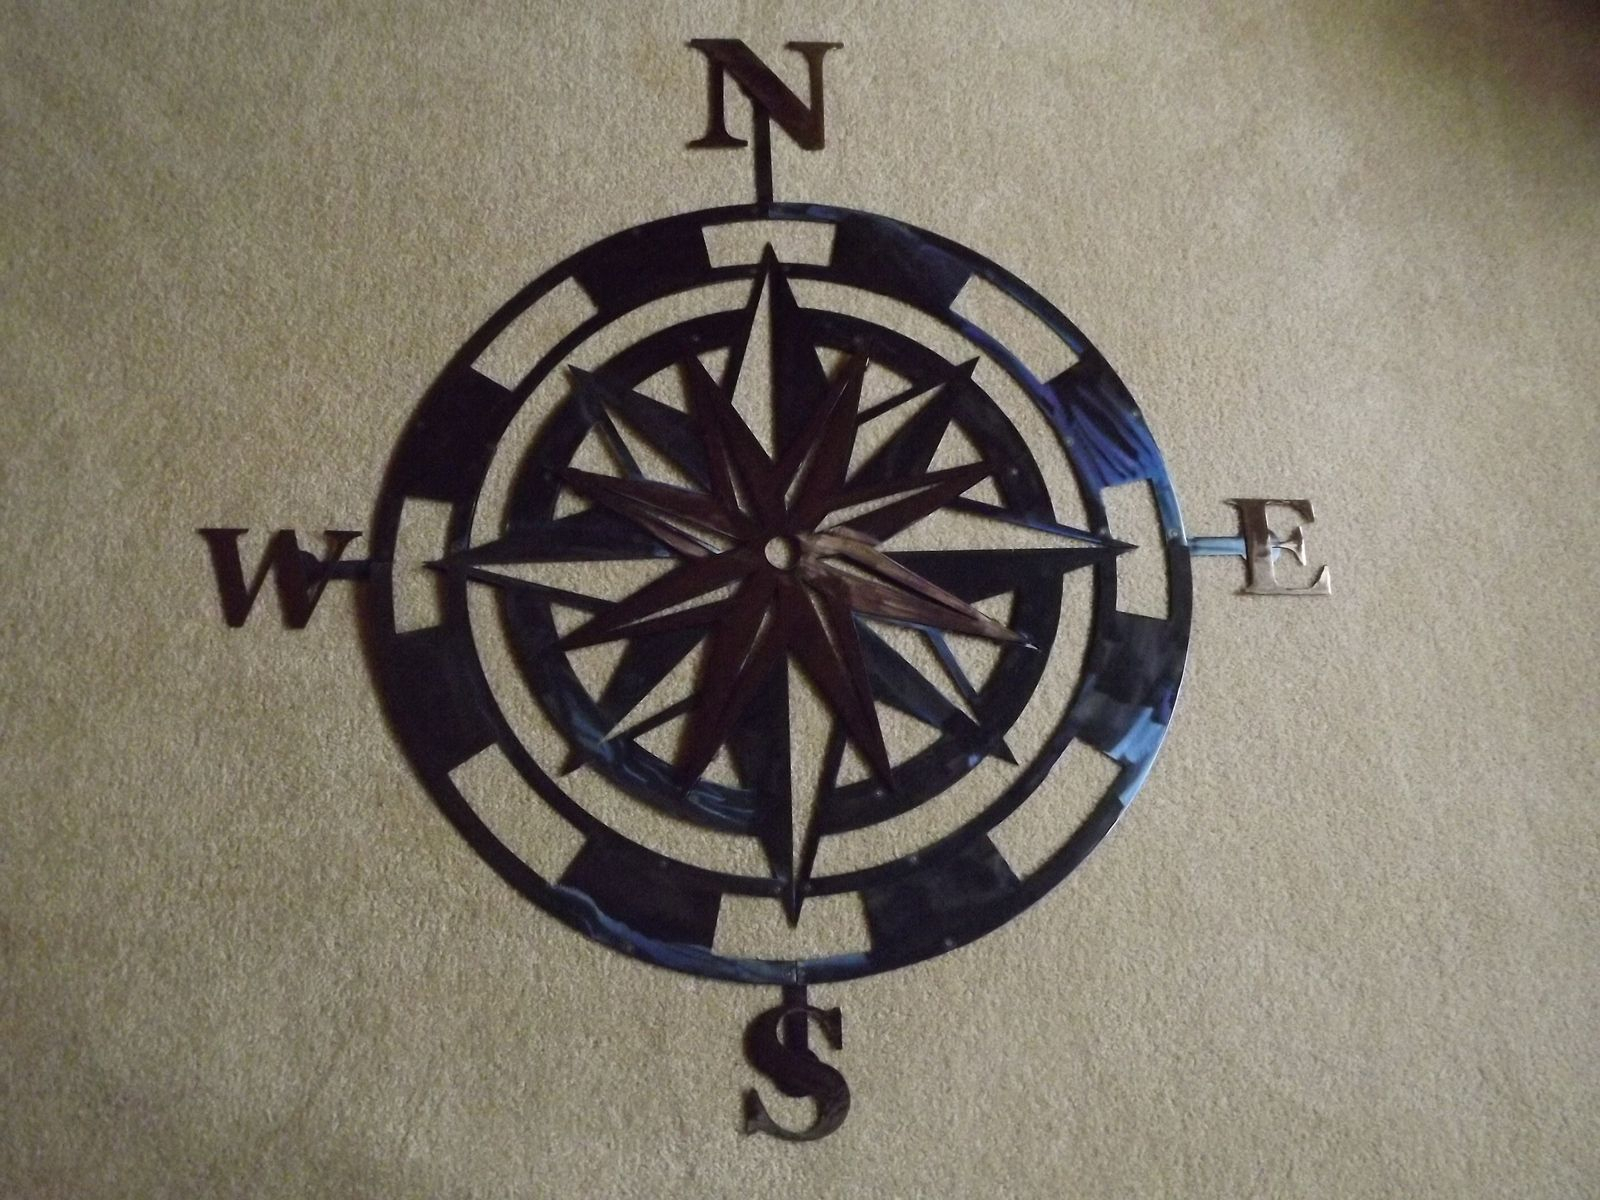 36 Inch Metal Compass Rose Wall Art inside Outdoor Metal Wall Compass (Image 5 of 30)